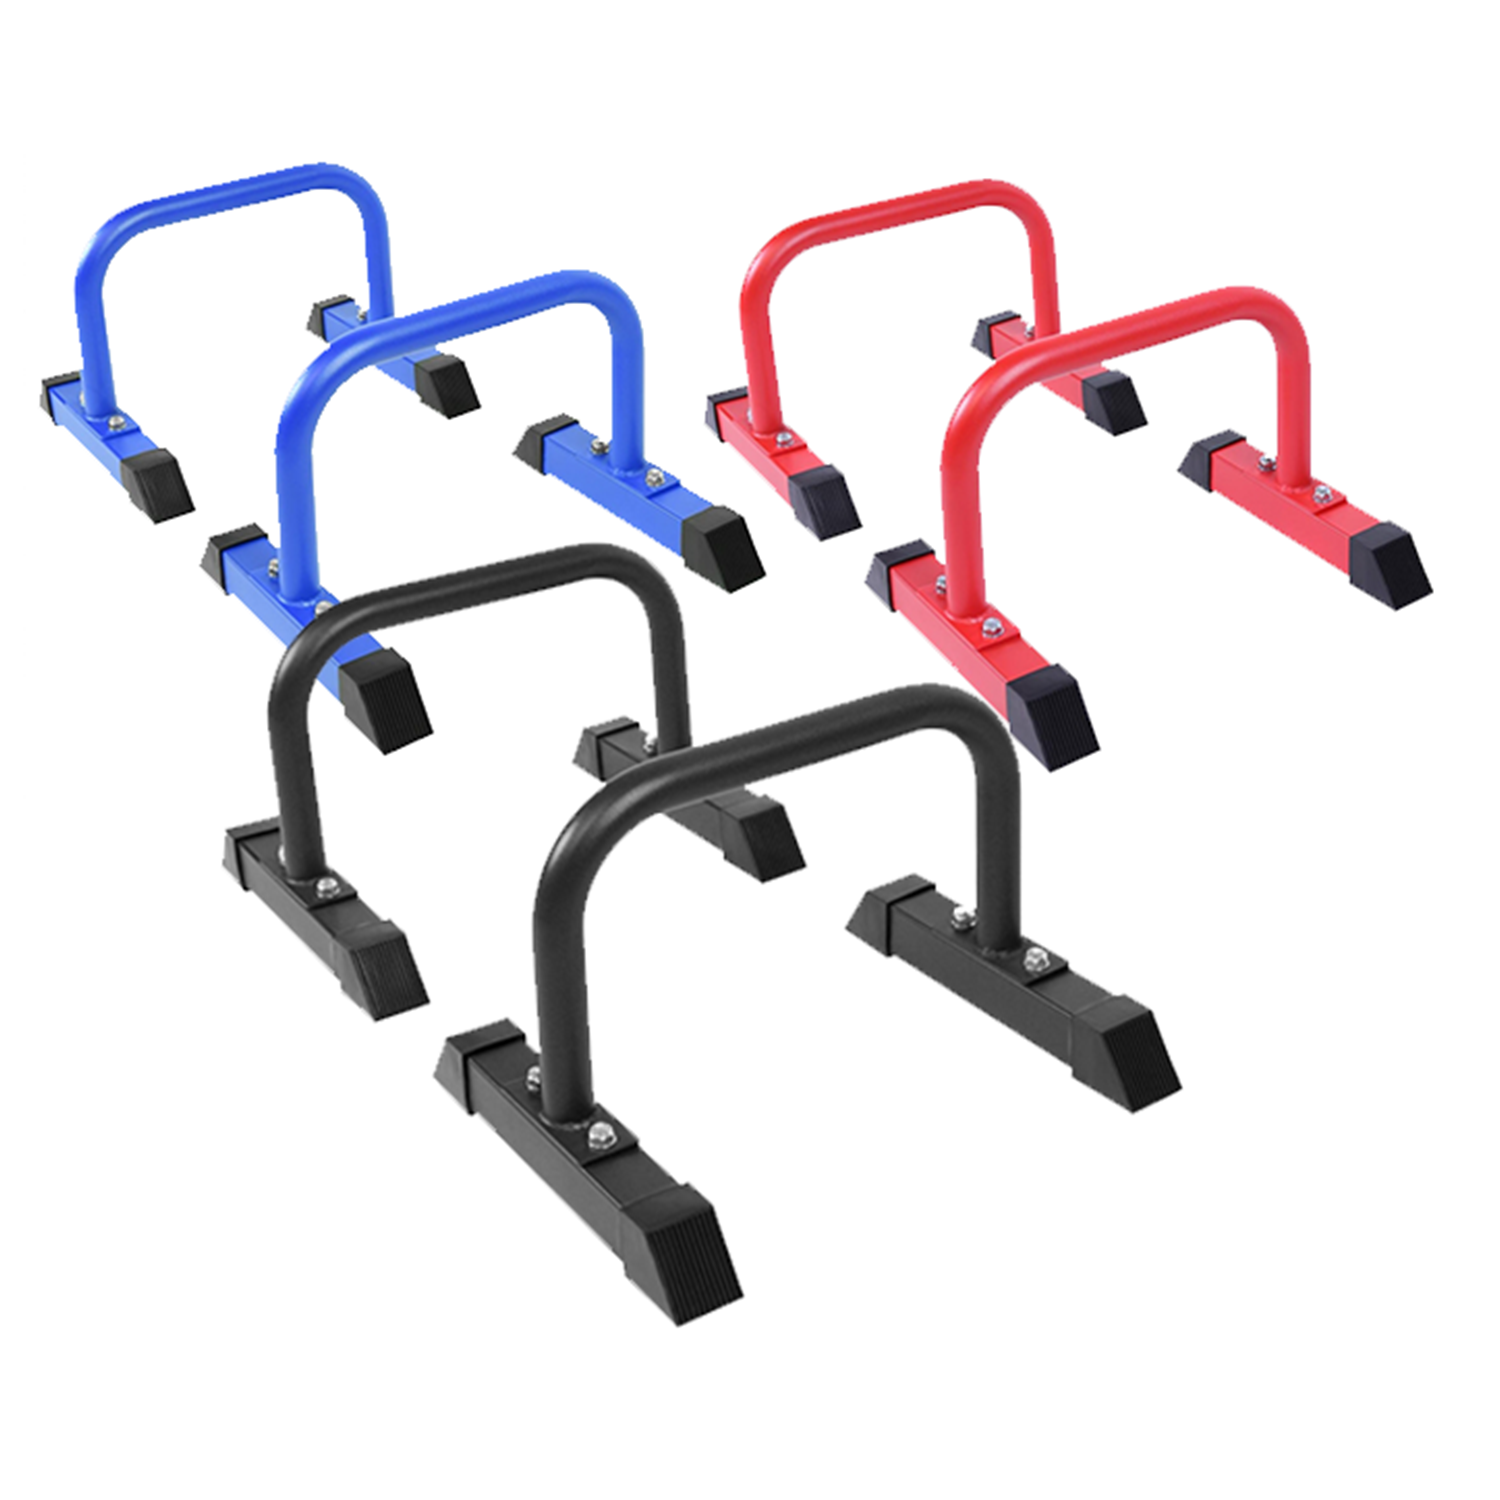 Parallettes Push Up Bars - Low - 1